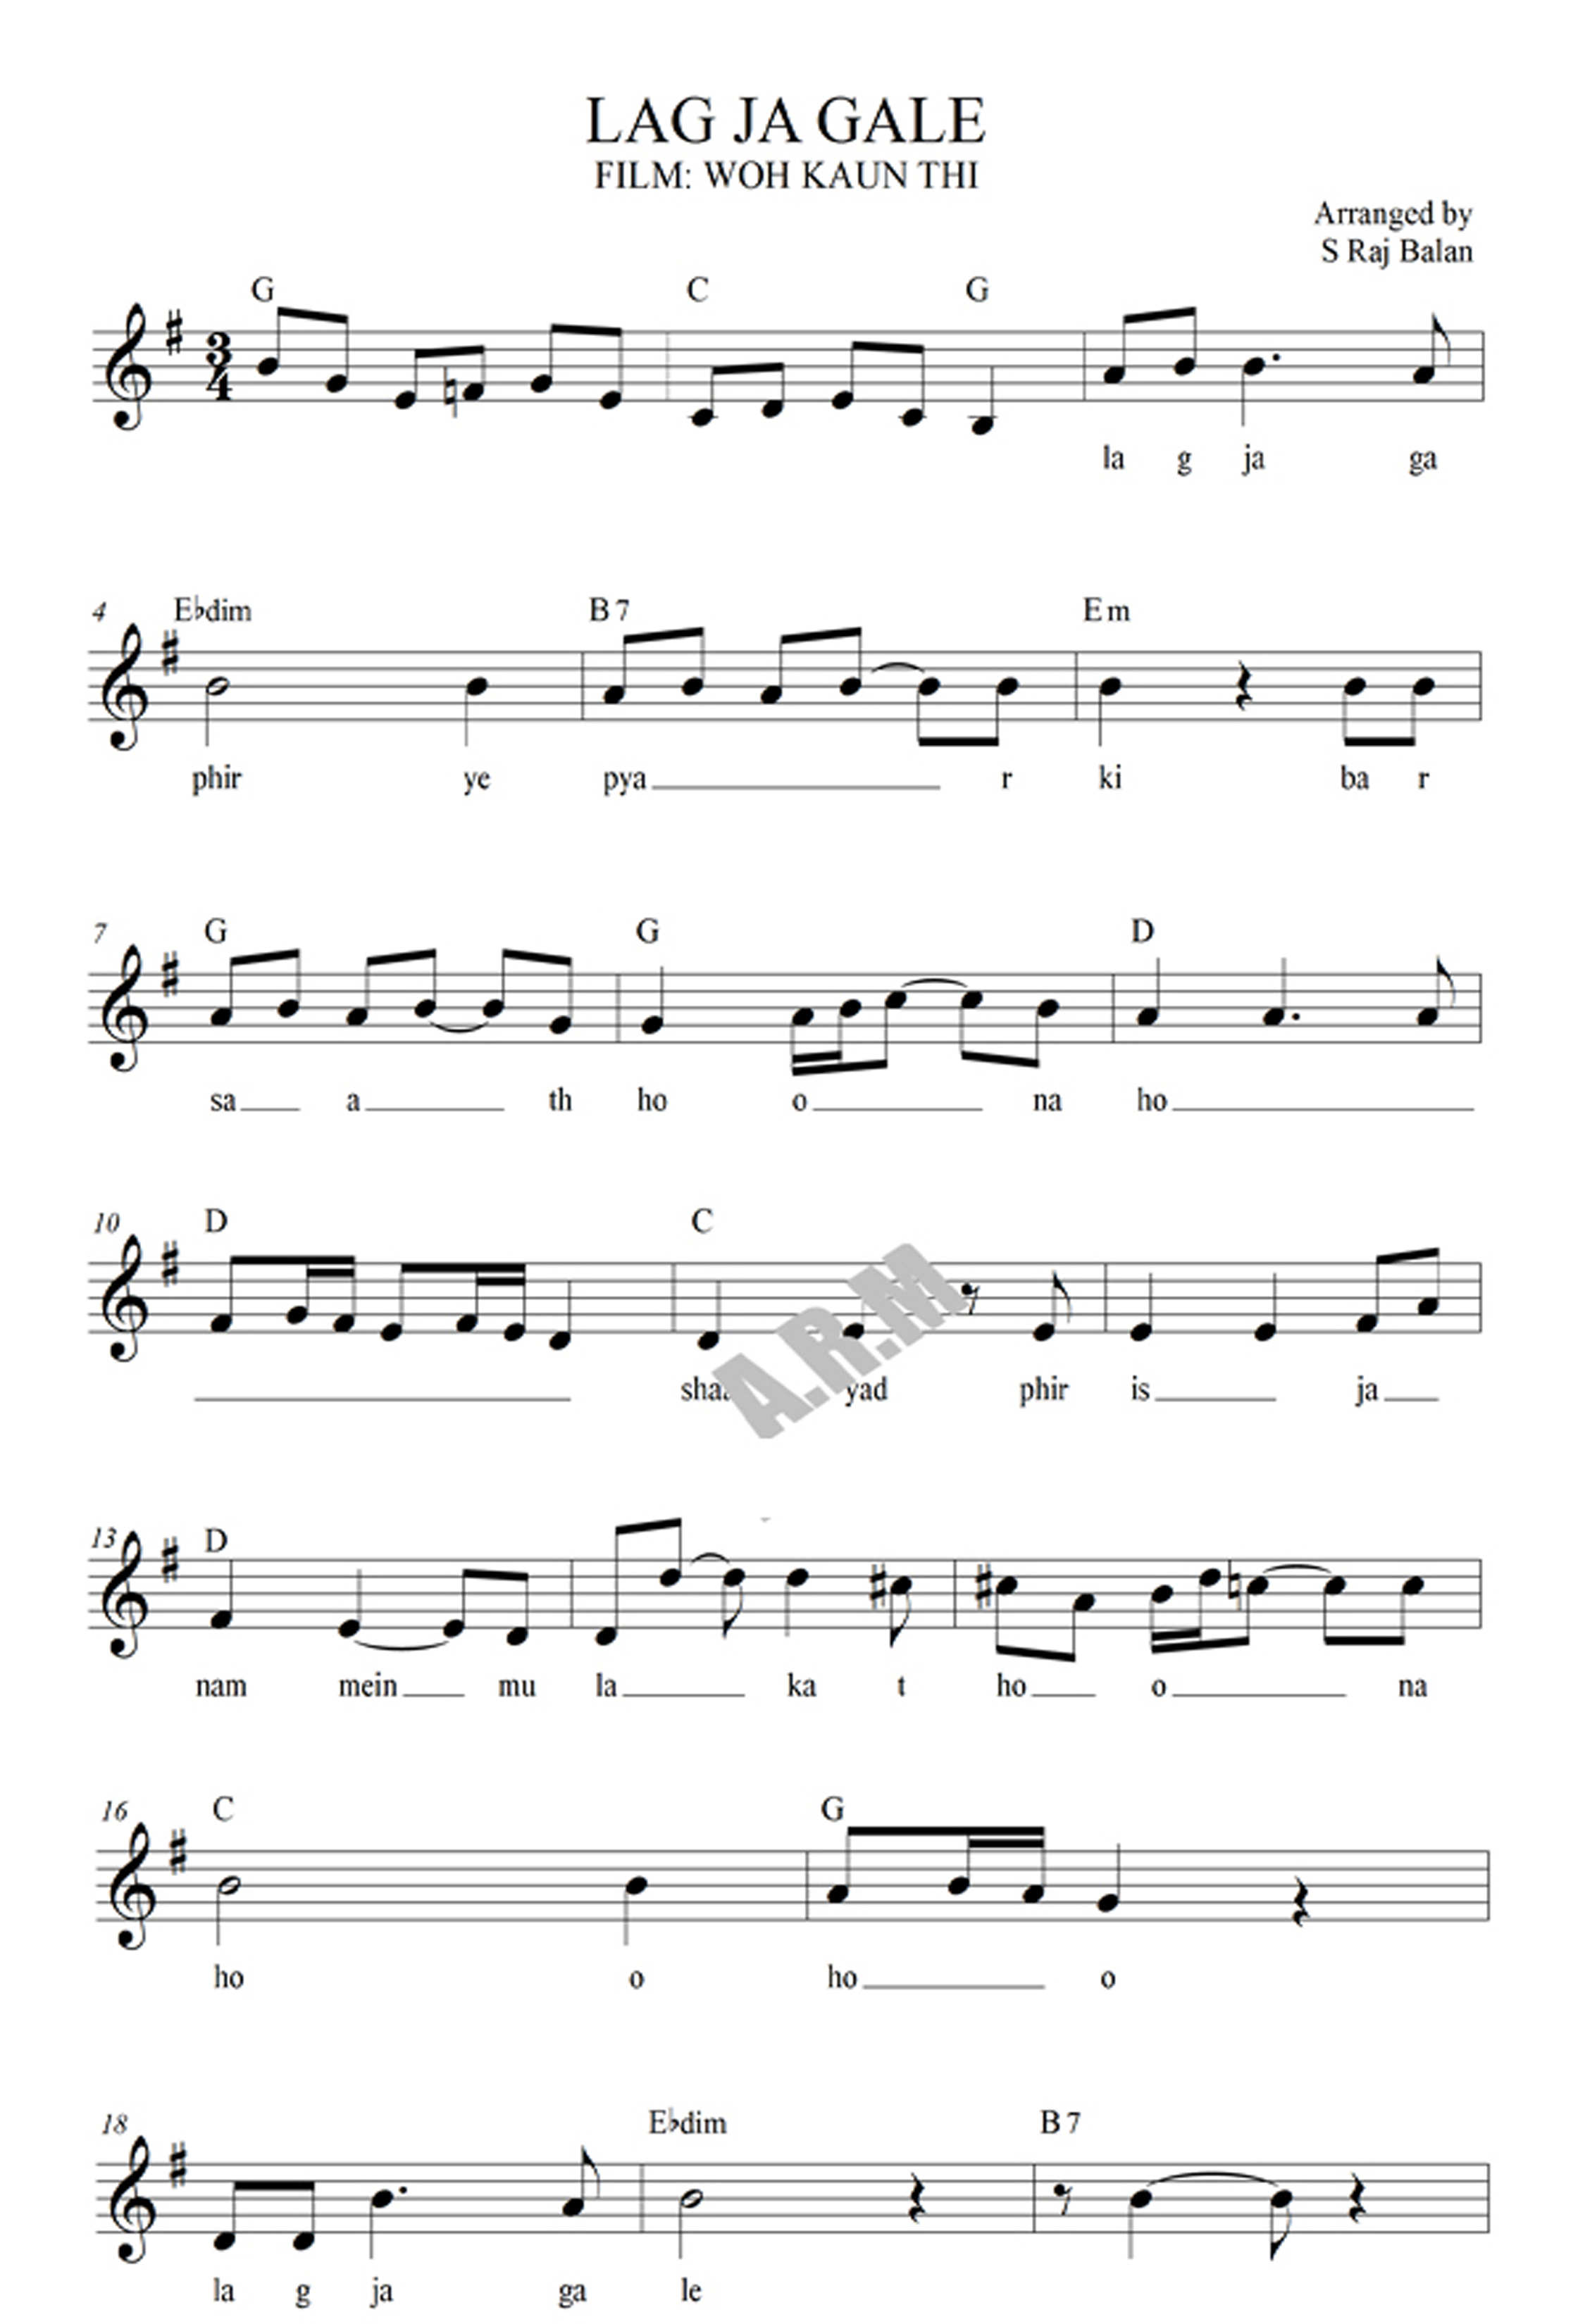 Lag Ja Gale Song Sheet Music Notes In Western Format With Full